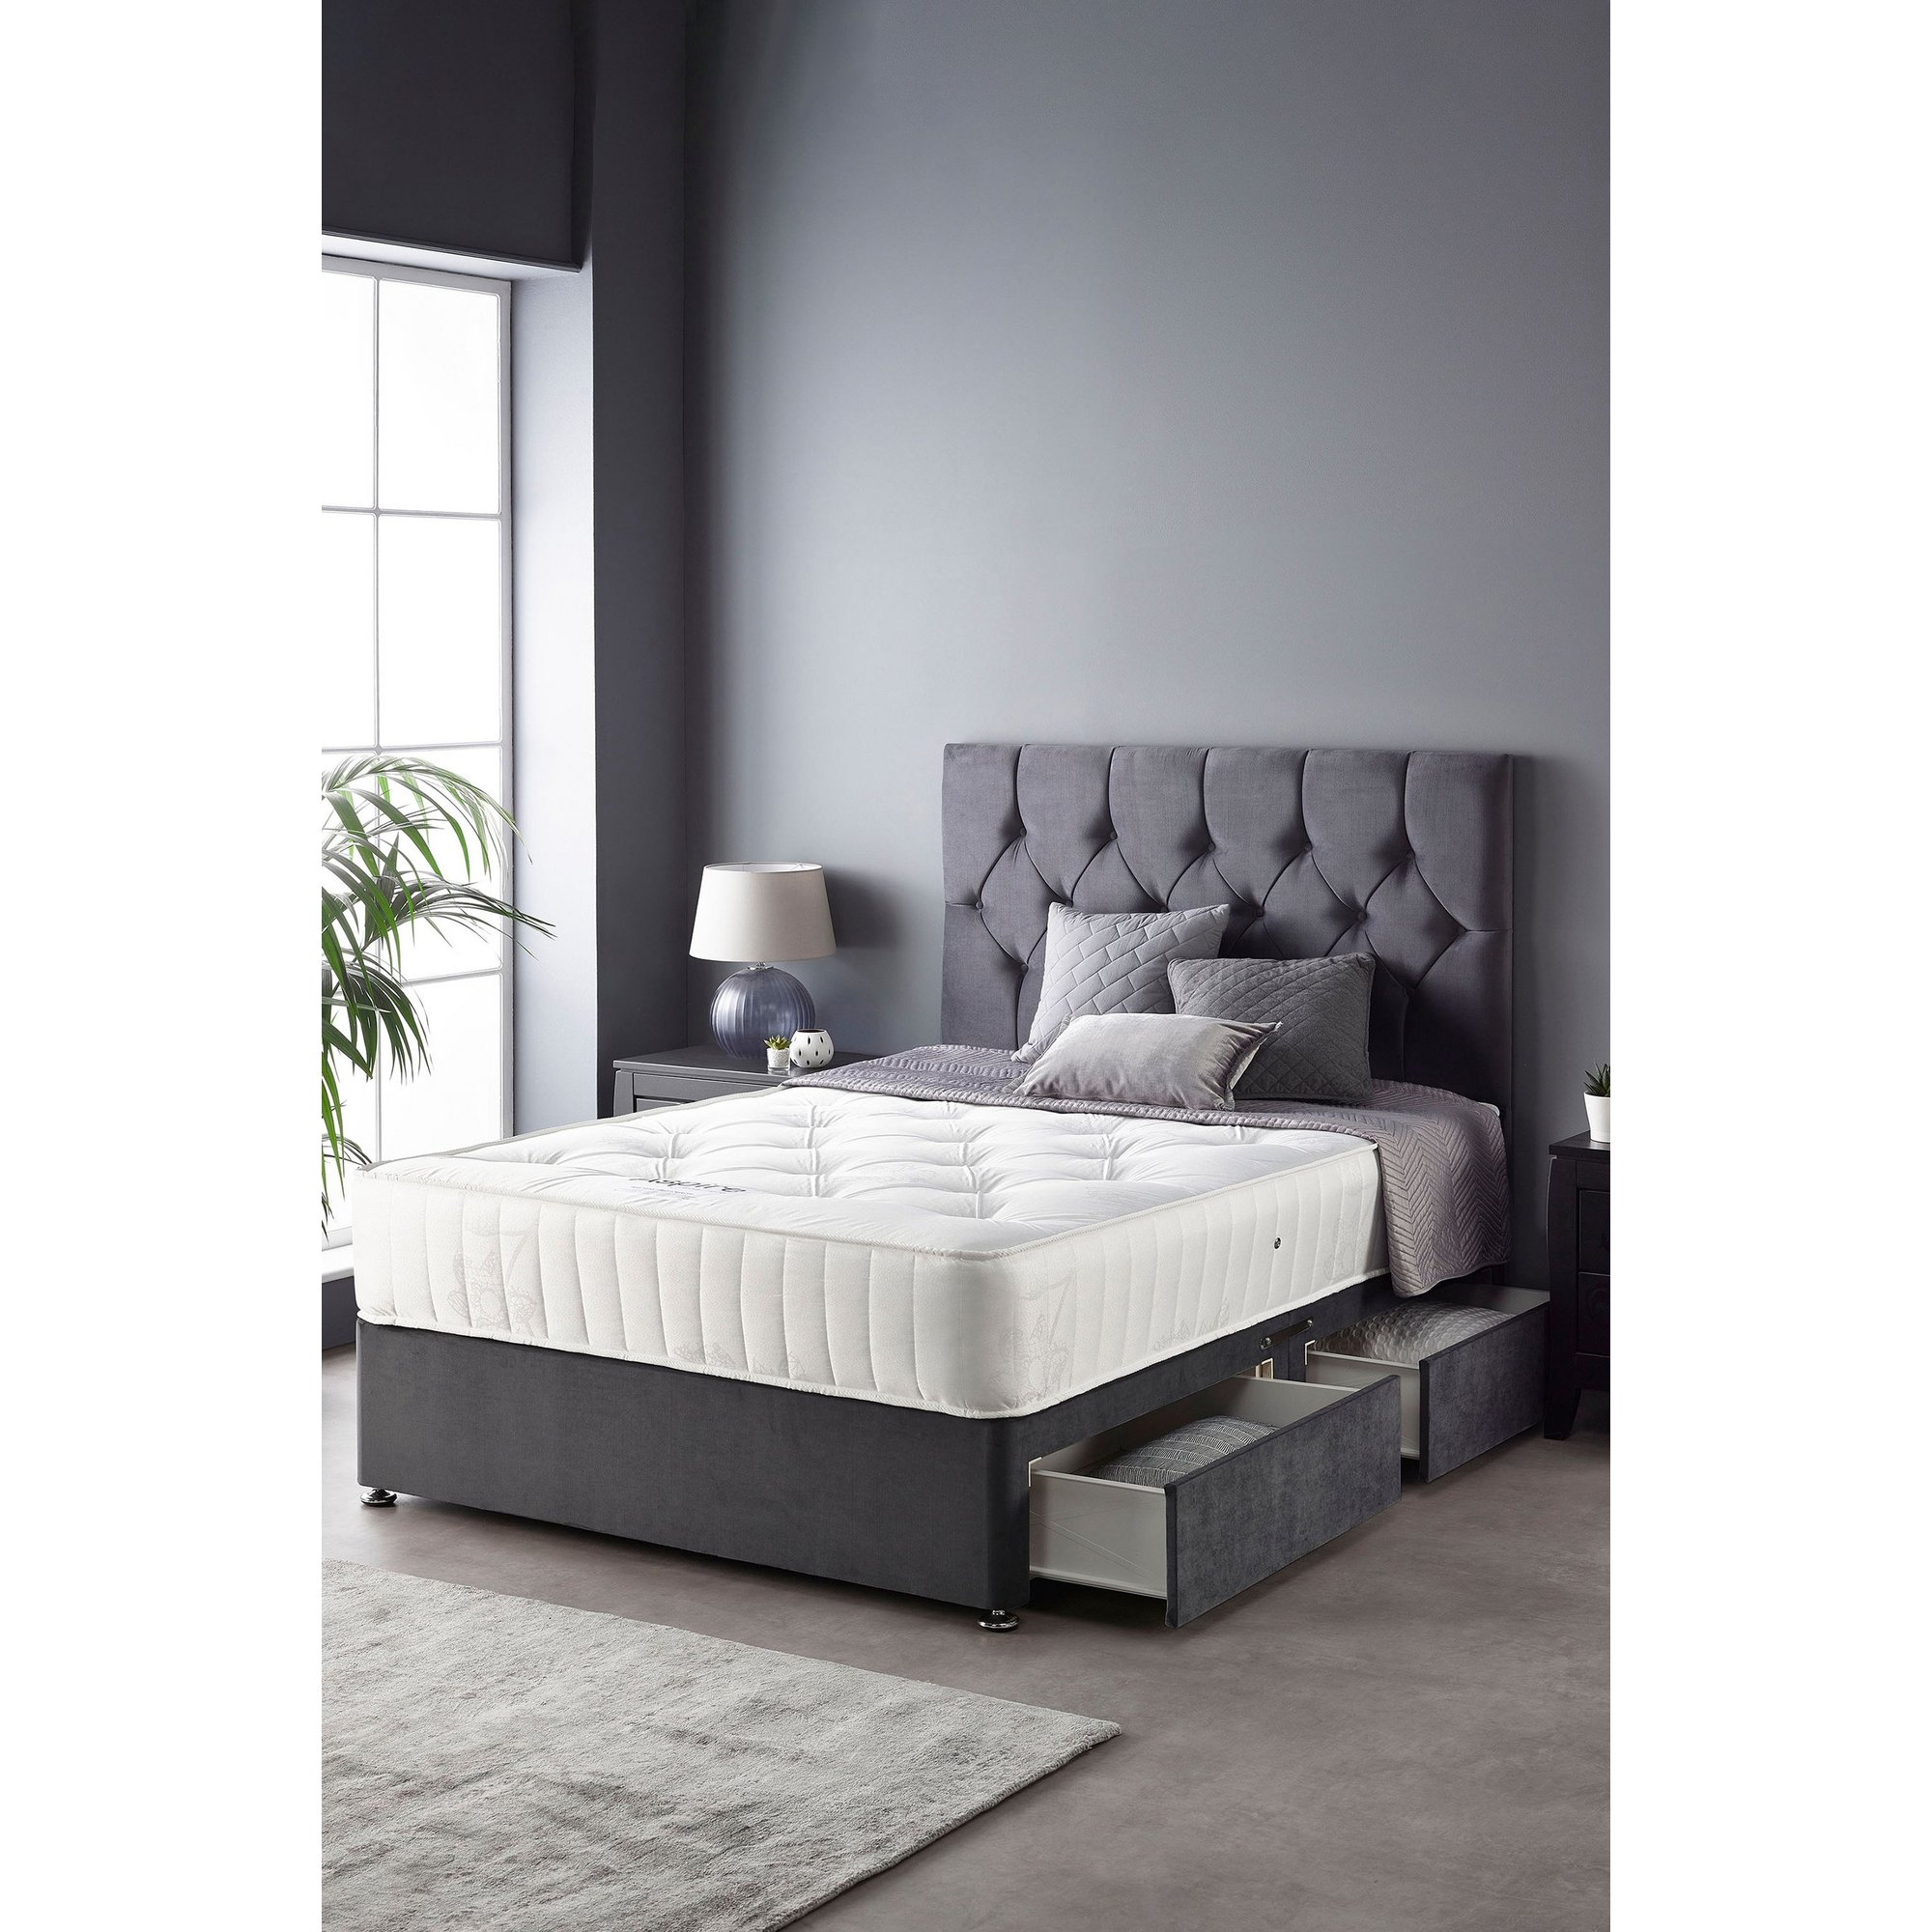 Image of Catherine Lansfield Boutique Ortho Pocket 4 Drawer Divan Bed